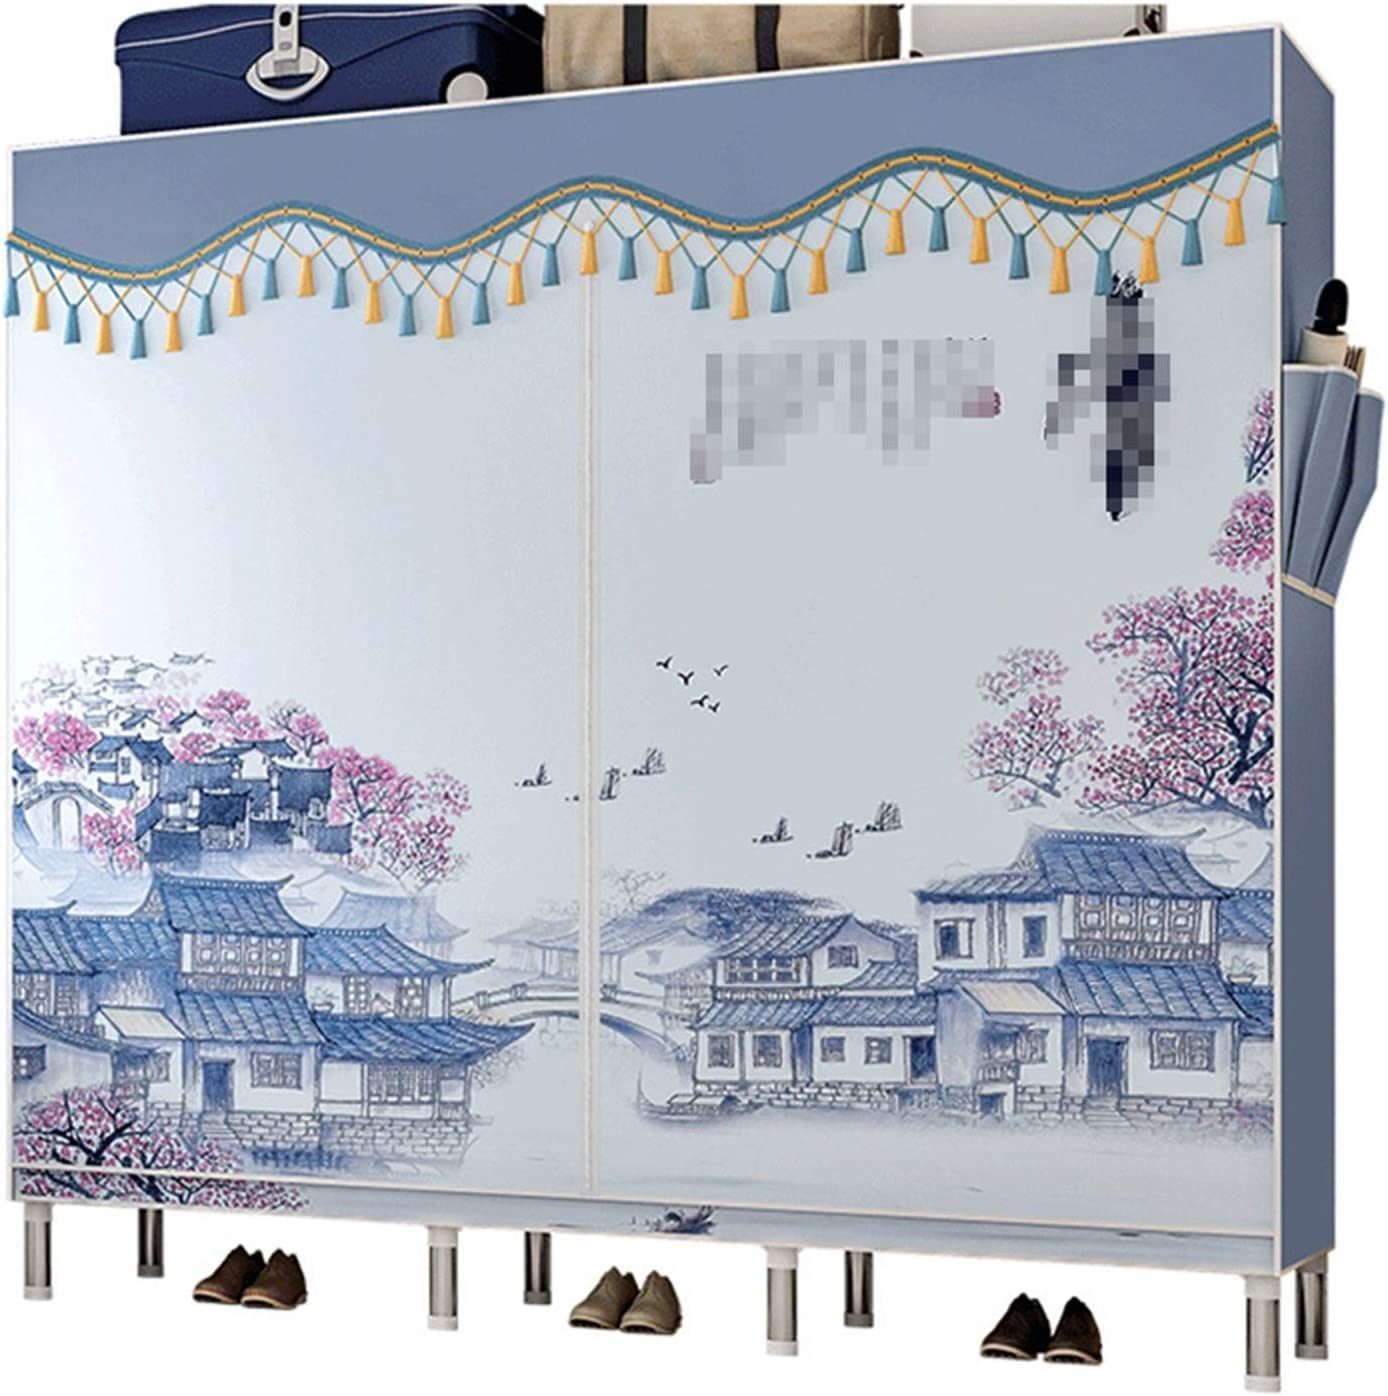 N/Z Home Equipment Canvas Wardrobe Wardrobe Armoire Closet Clothes Storage Rack 7 Shelves 4 Side Pockets 3 Hanging Rail Quick and Easy to Assemble (Color : D2 Size : 168x46x173cm)